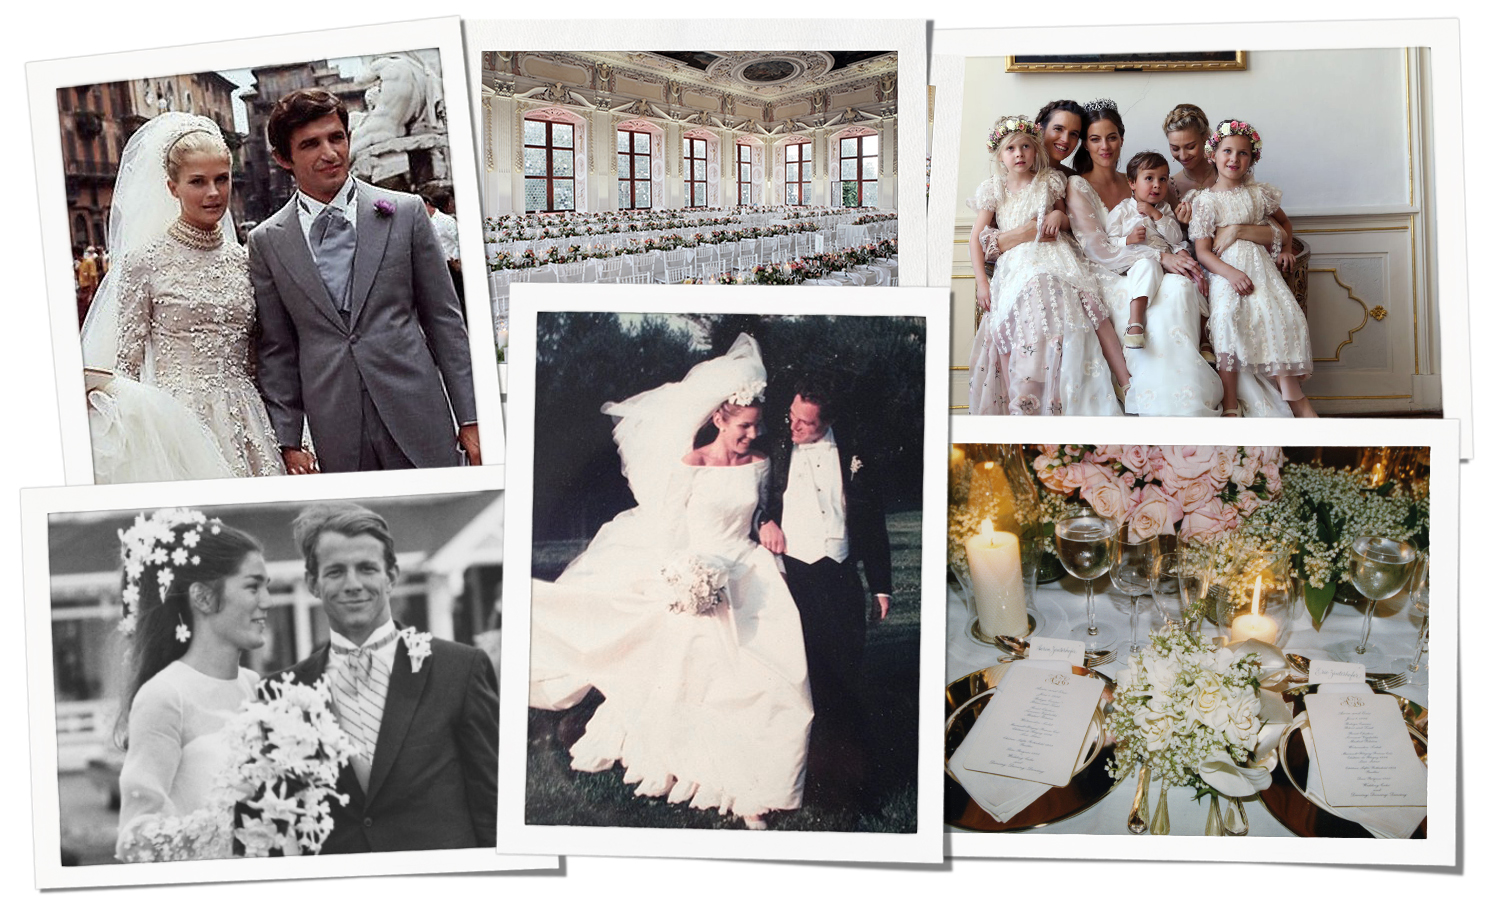 A selection of some of Aerin's favorite wedding snapshots to inspire and help you find the perfect gift for the happy couple.